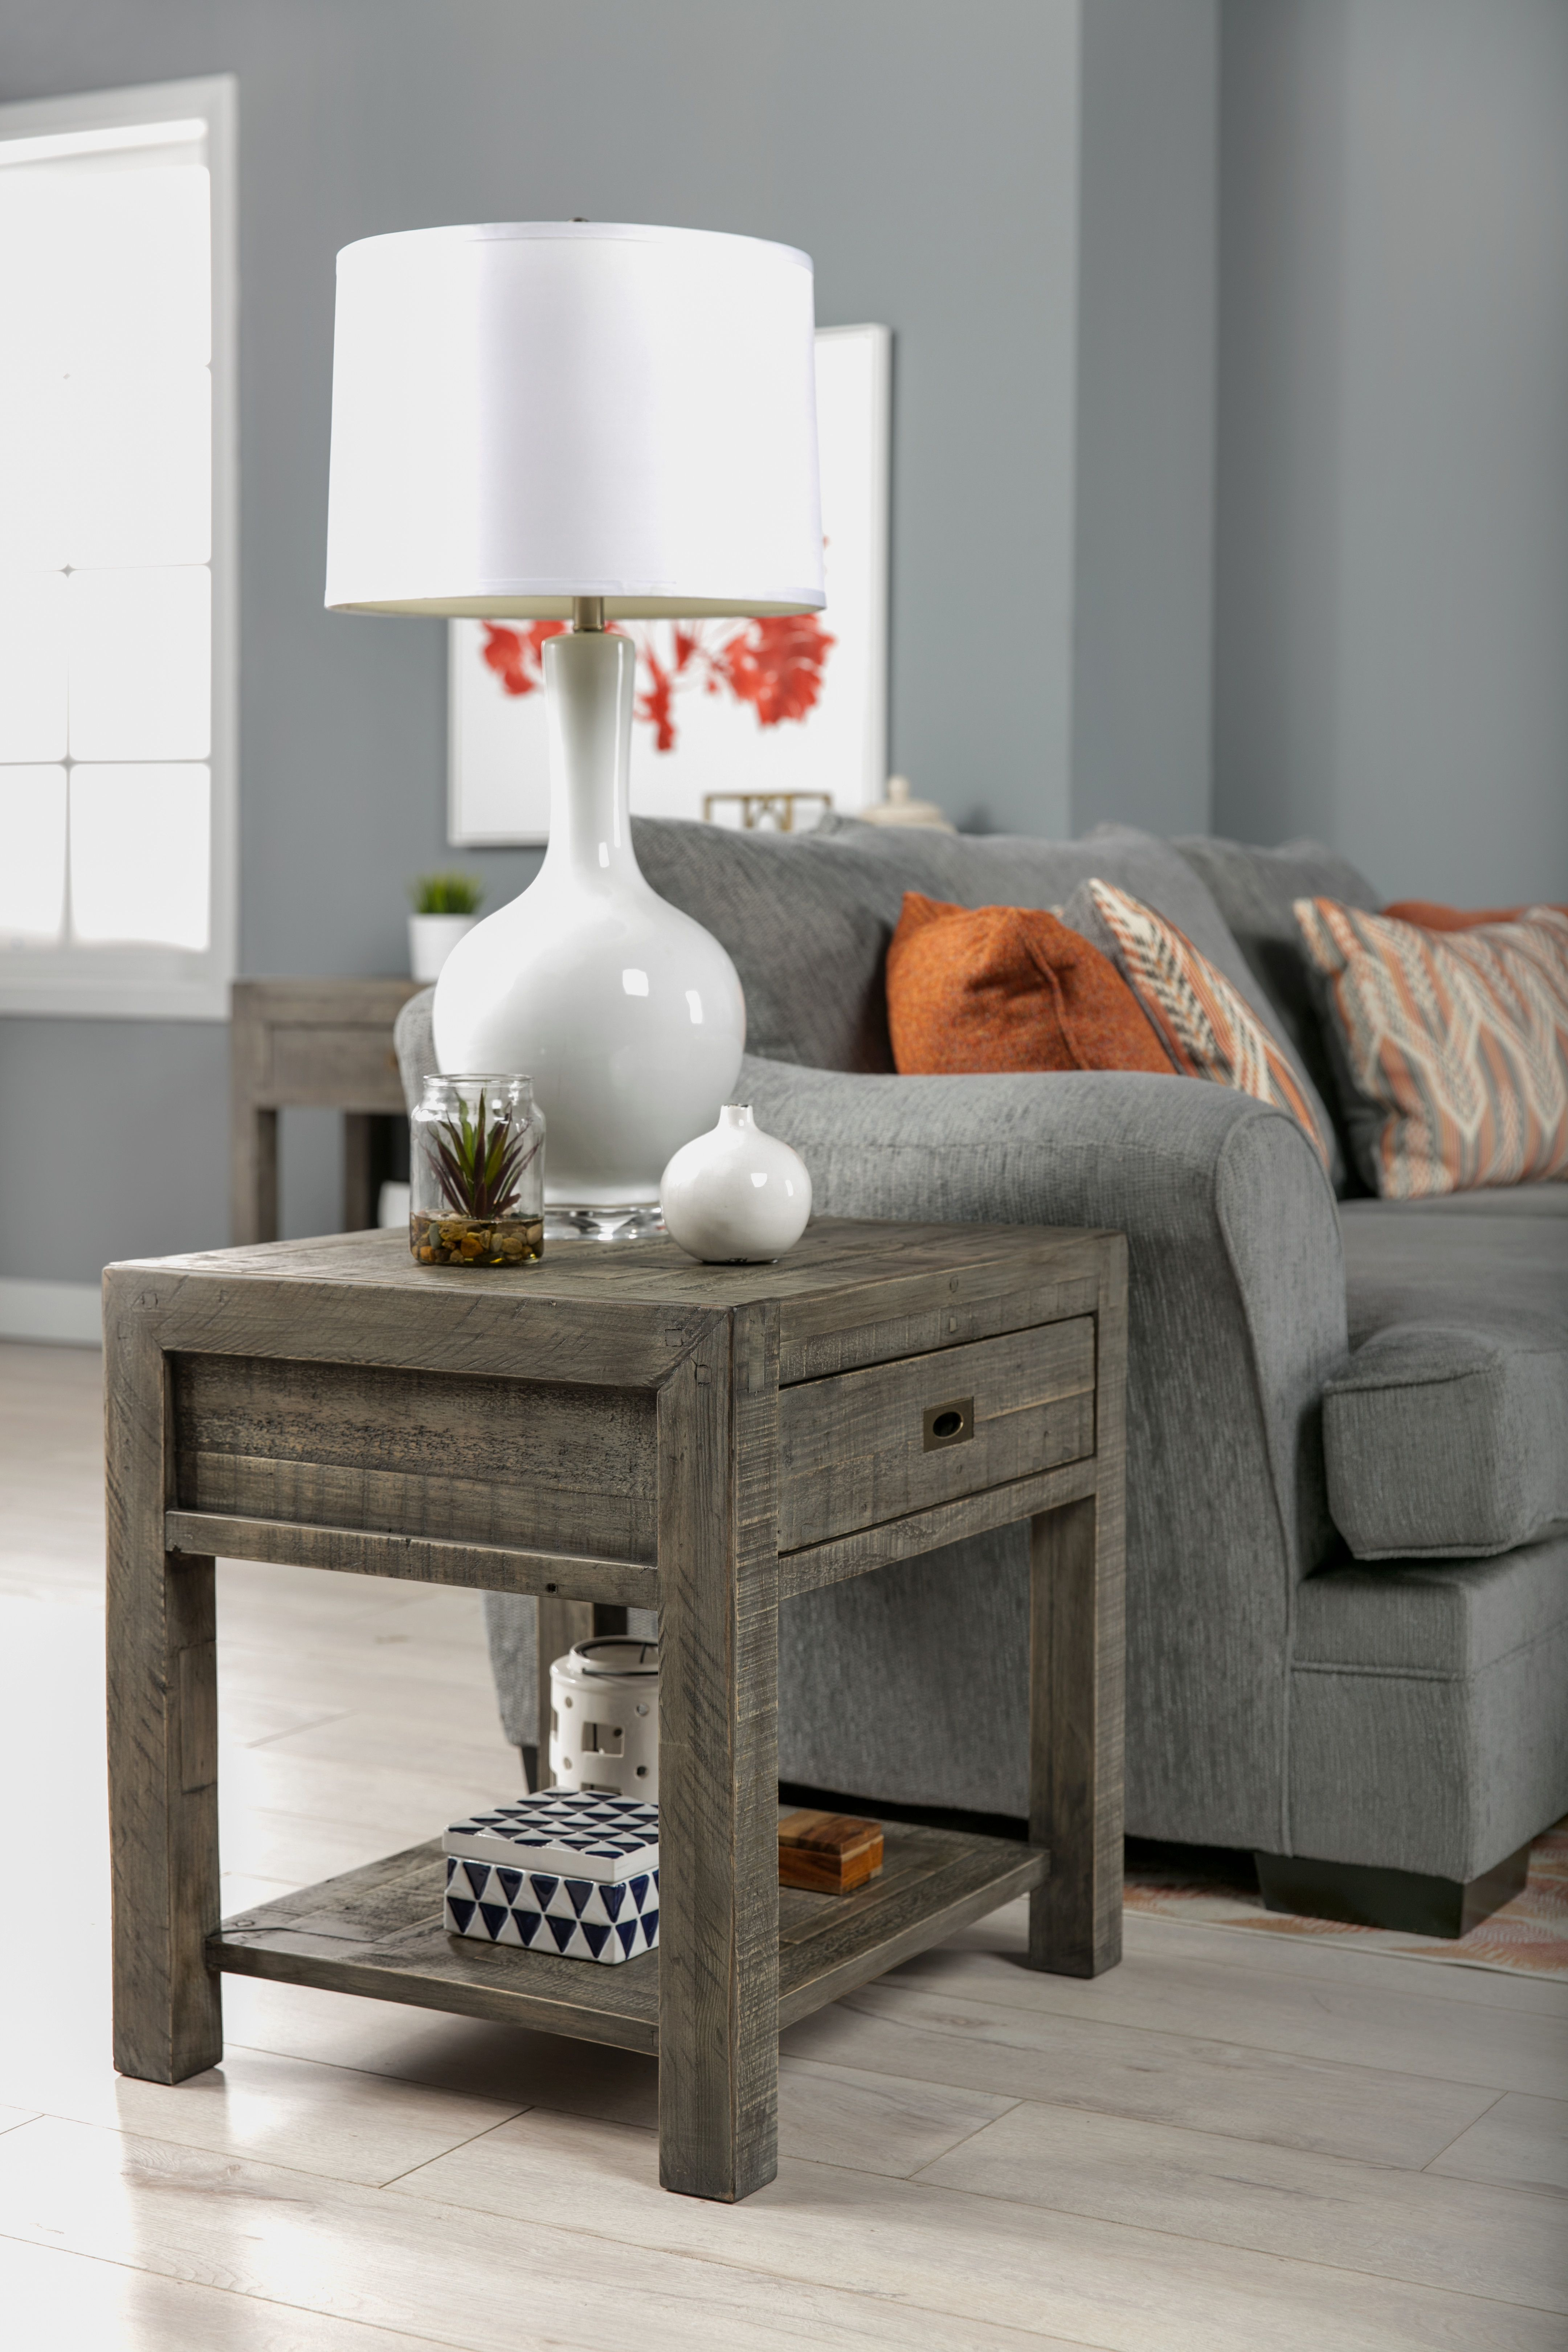 living room end tables big lots mustard and gray great livingroom inspiration reclaimed wood side table your space spaces